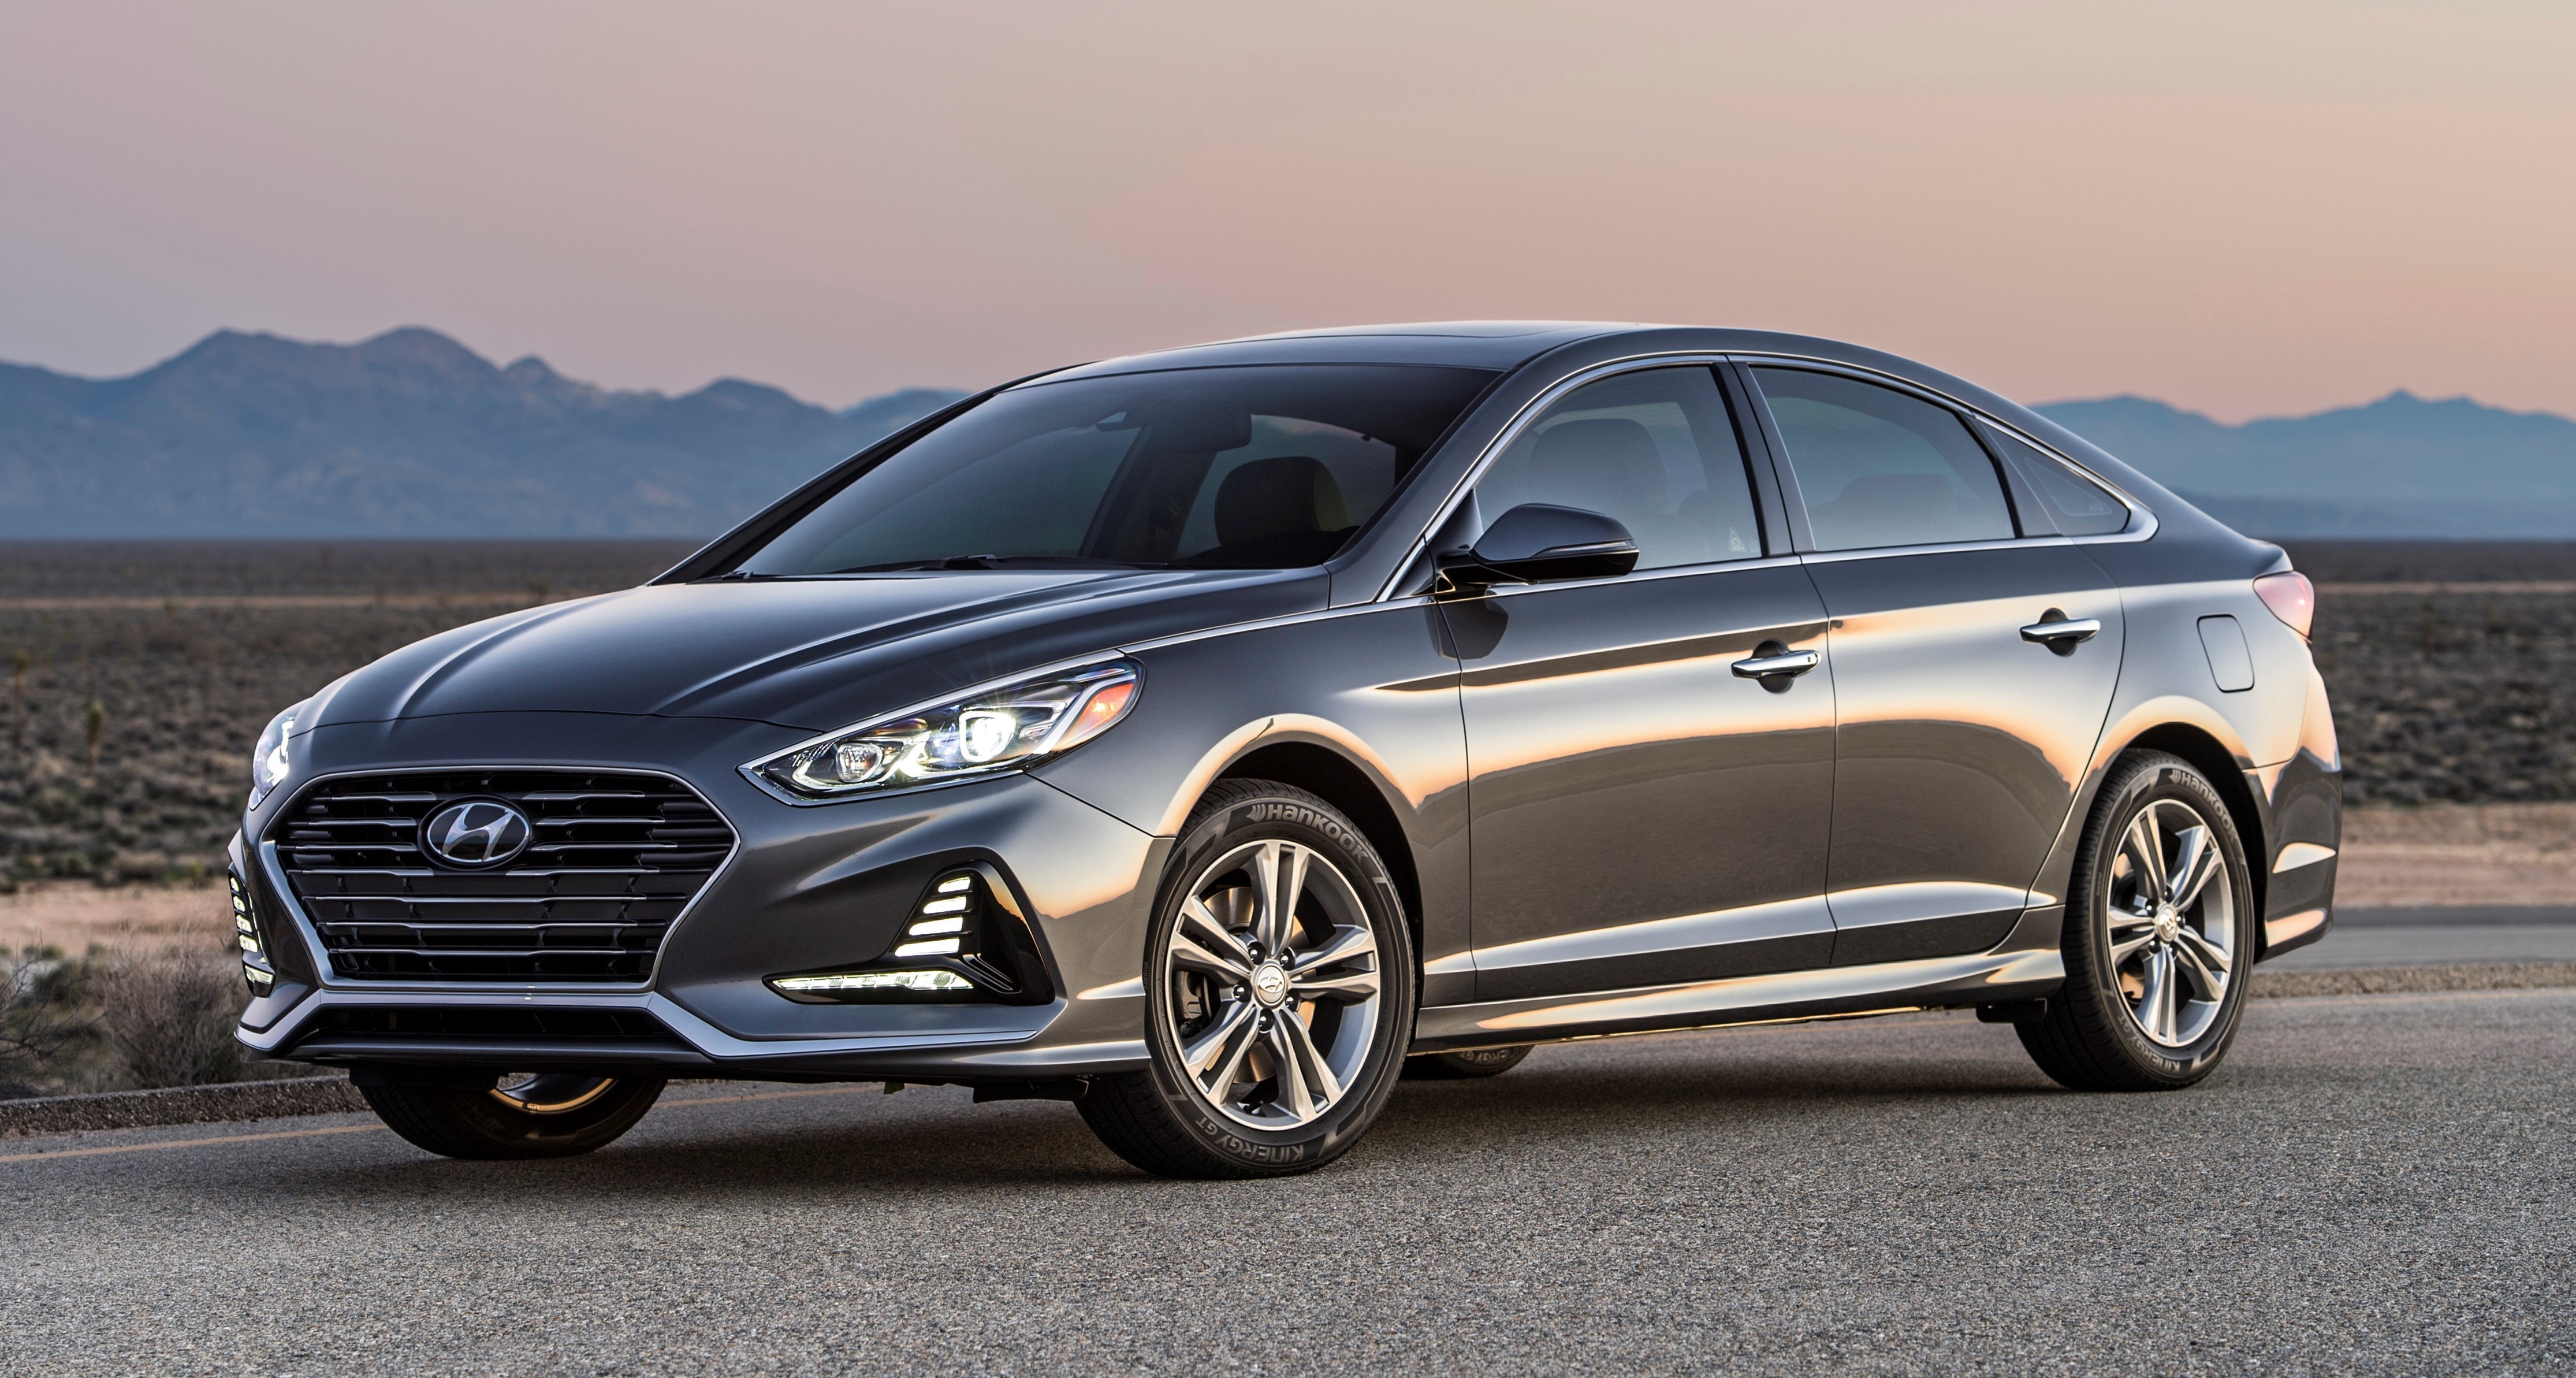 2018 HYUNDAI SONATA …as American as apple pie